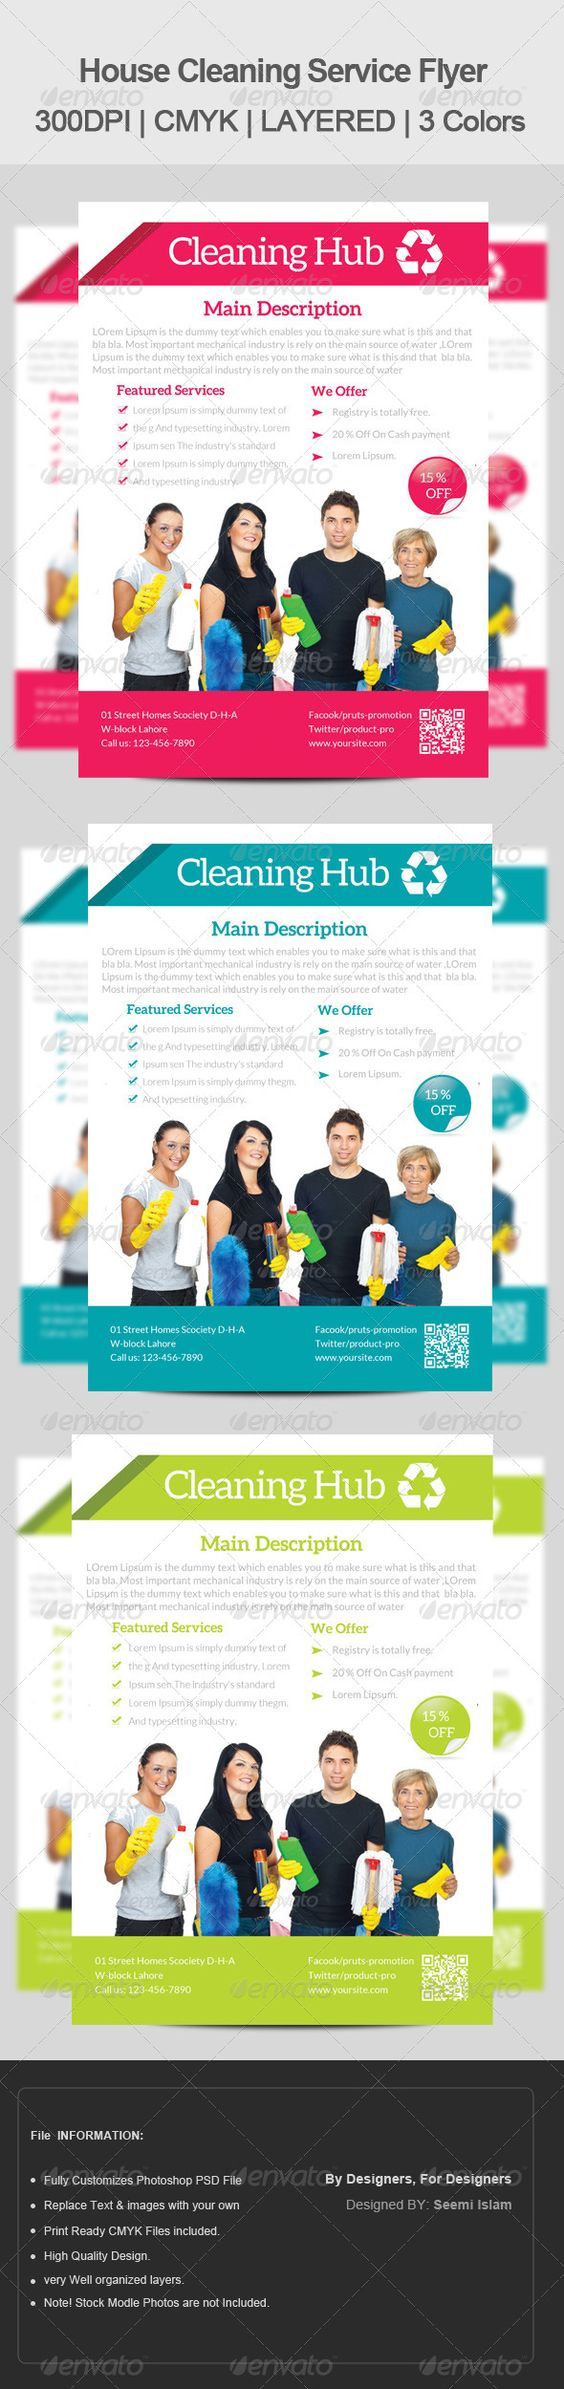 house cleaning services flyer template cleaning service flyer house cleaning services flyer template